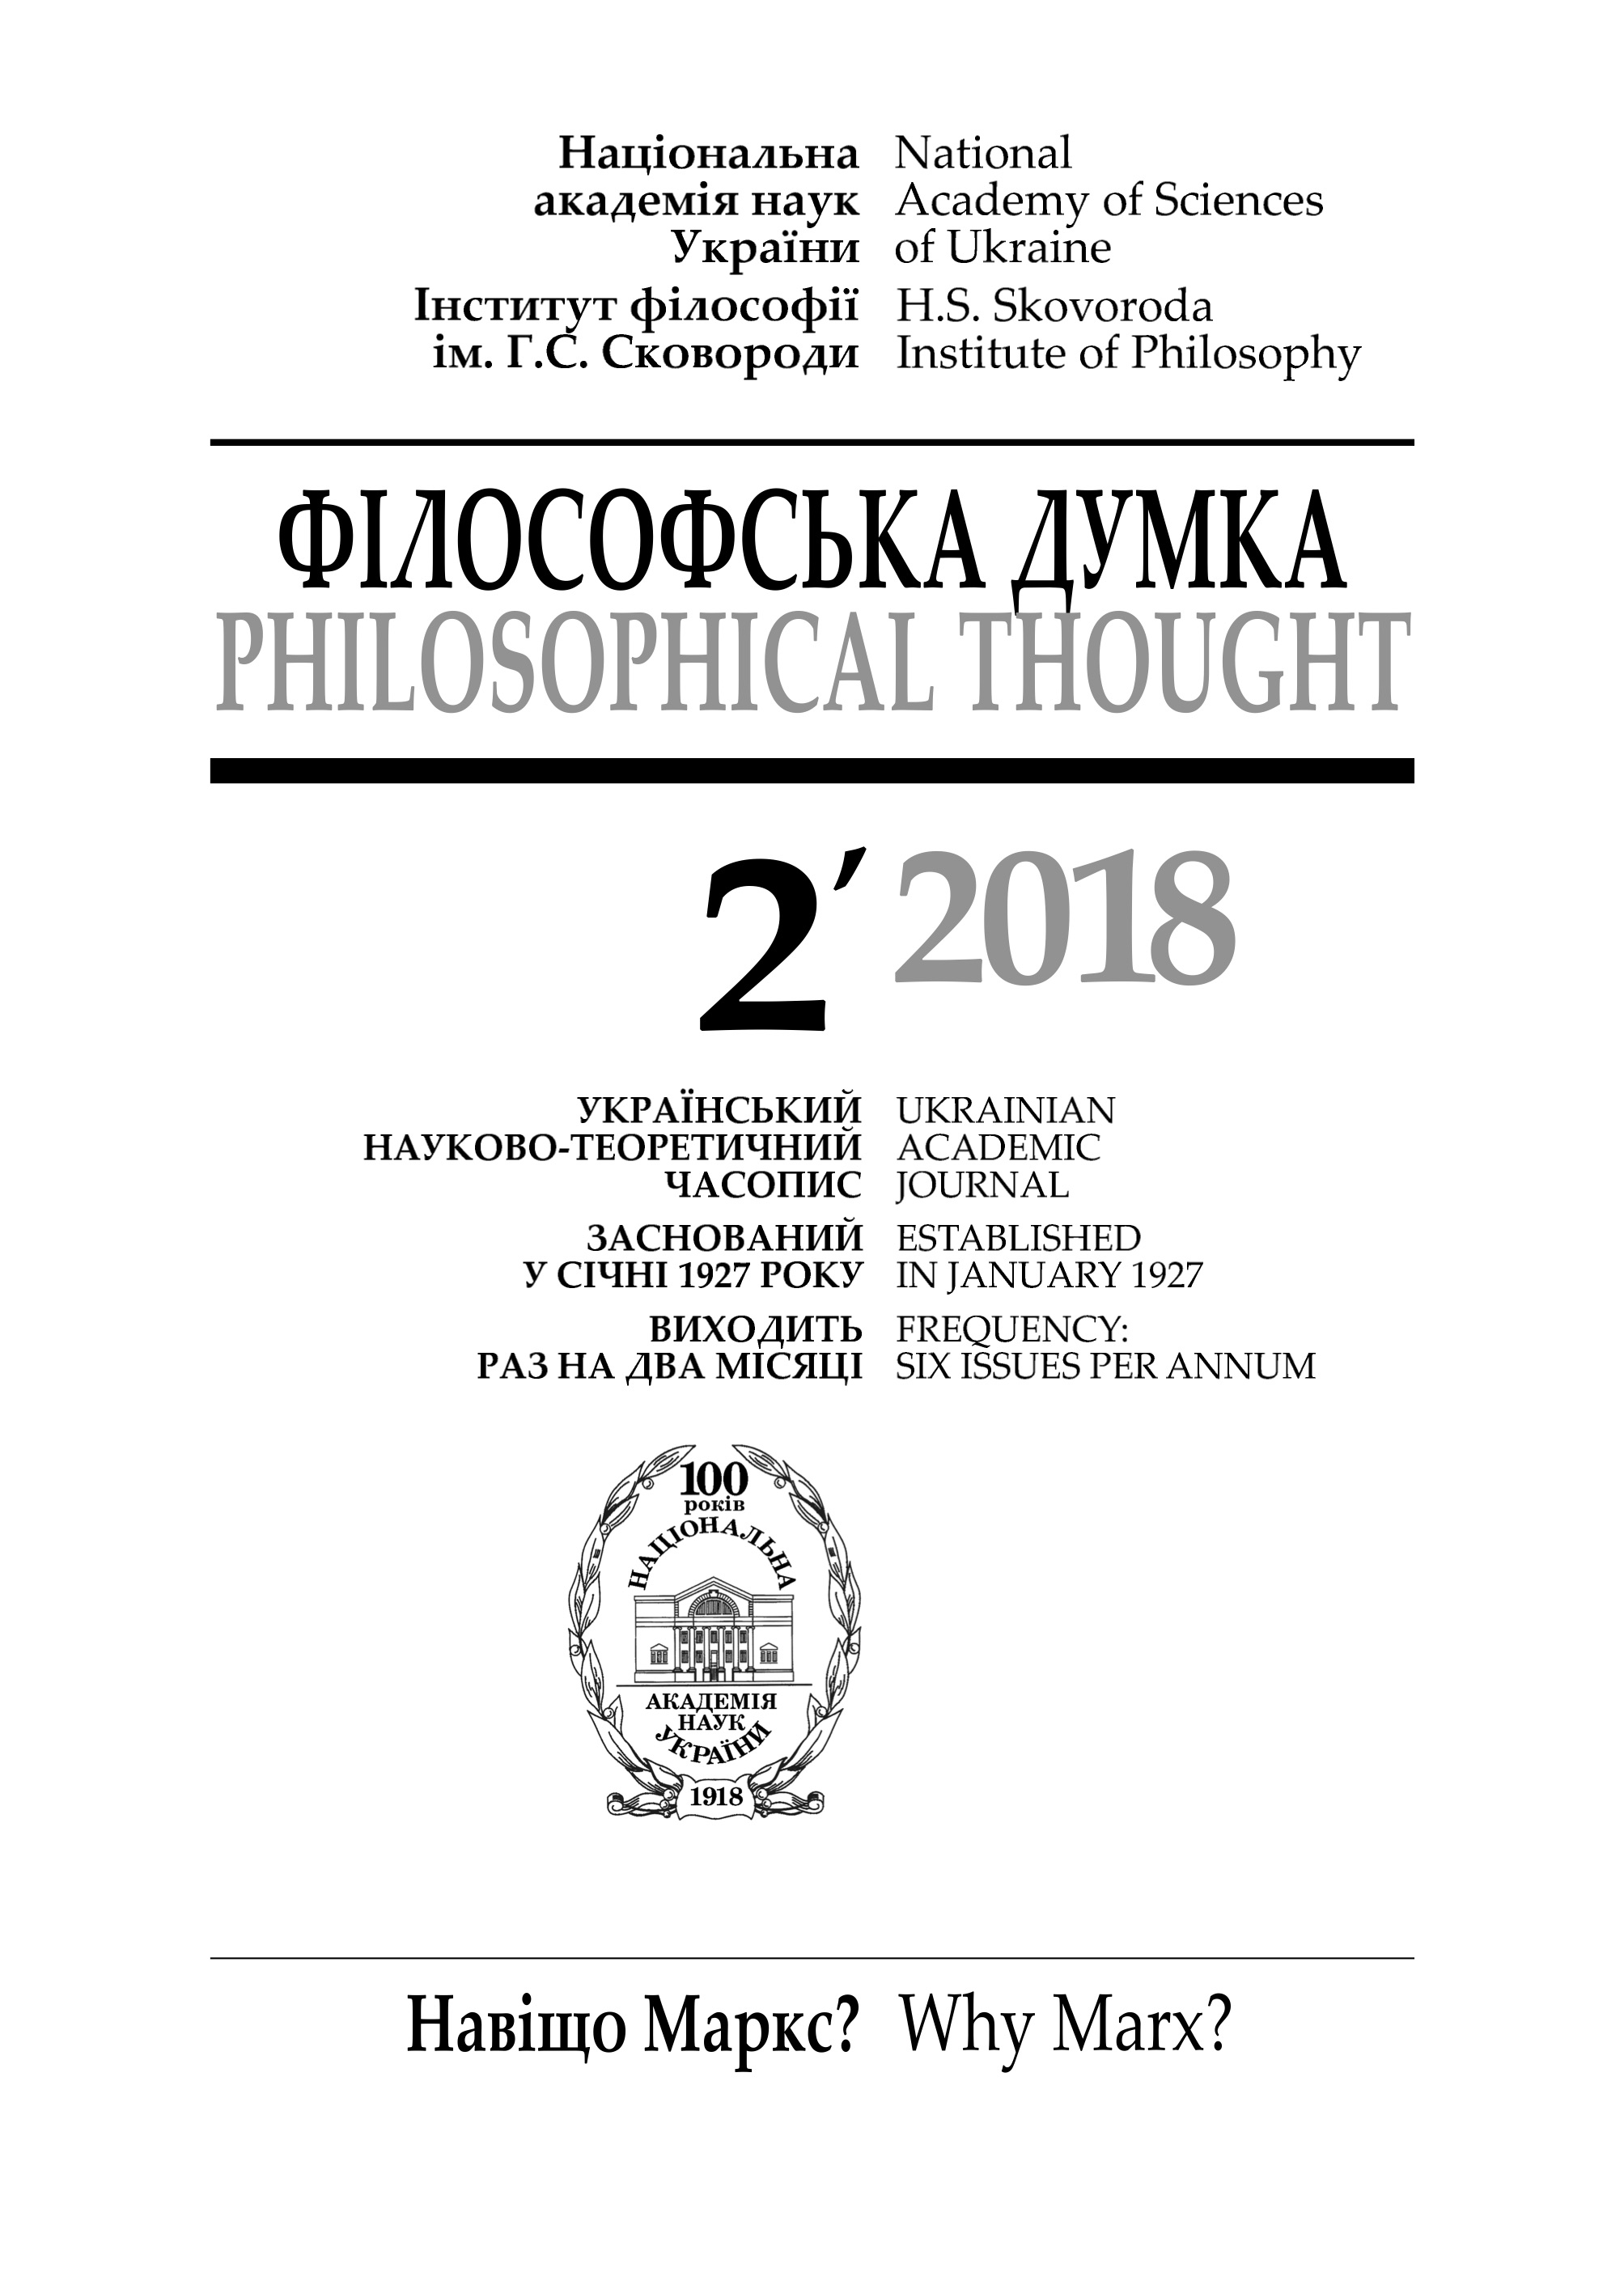 View No. 2 (2018): Philosophical thought